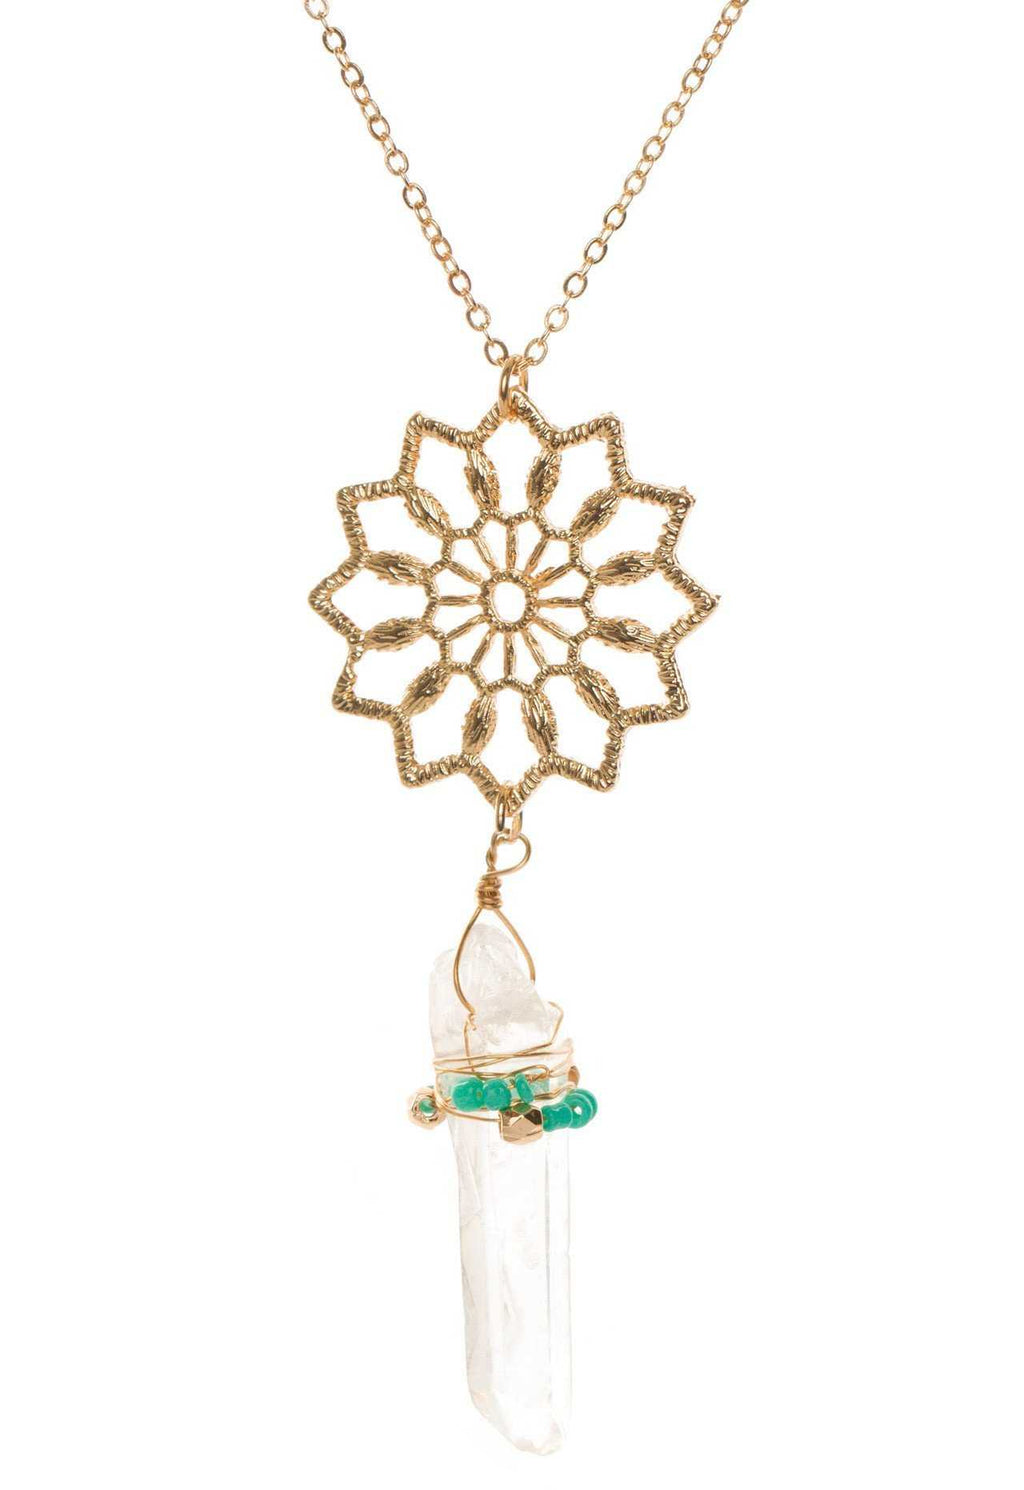 Jewelry - Love Of Mine Necklace In Teal